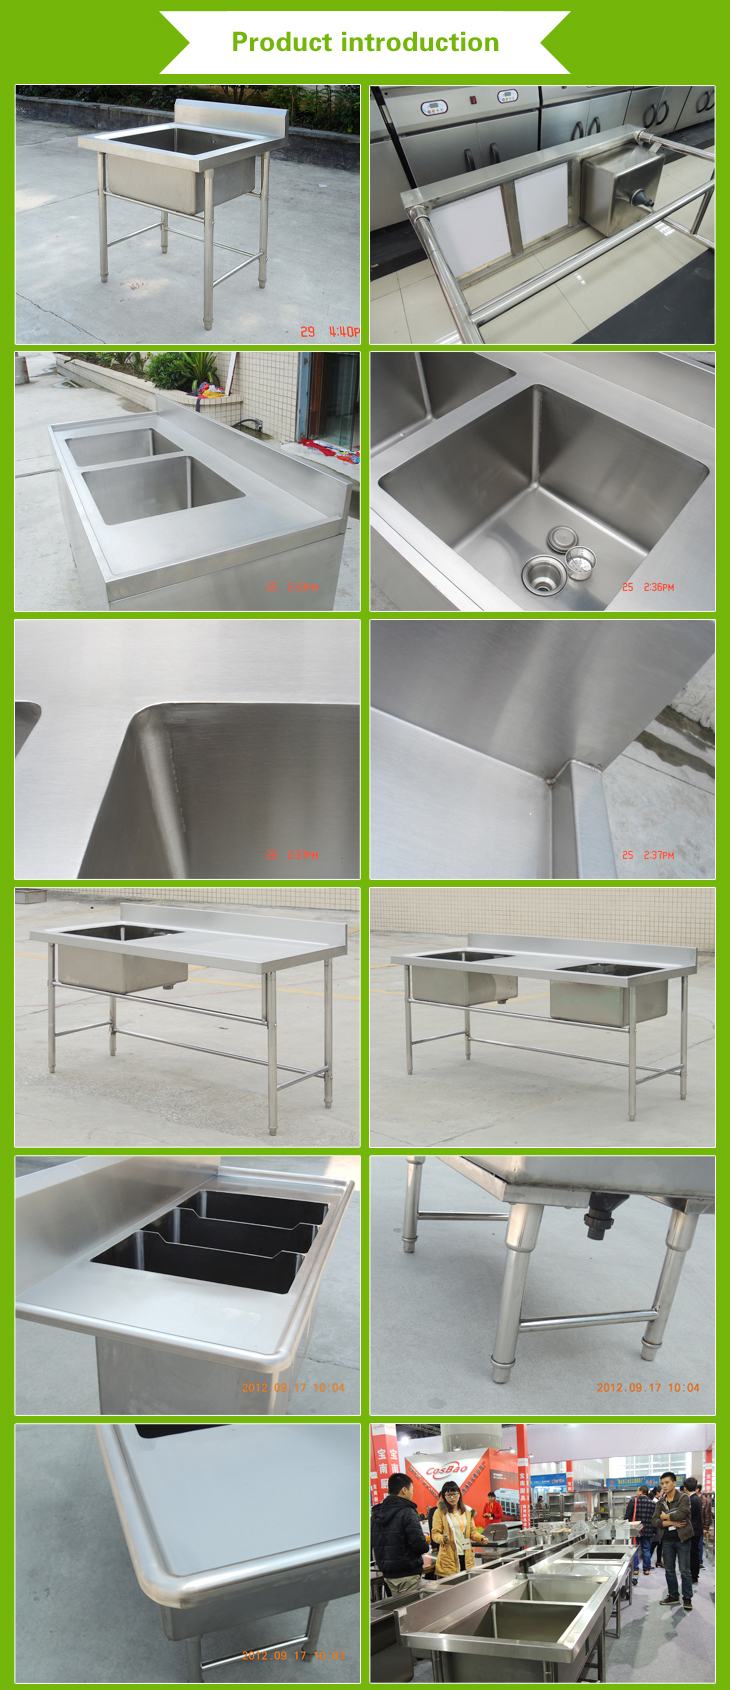 Cosbao names of kitchen equipments restaurant equipment 900 600 view -  Bn S28 Bn S29 New Design Stainless Steel Commercial Kitchen Triple